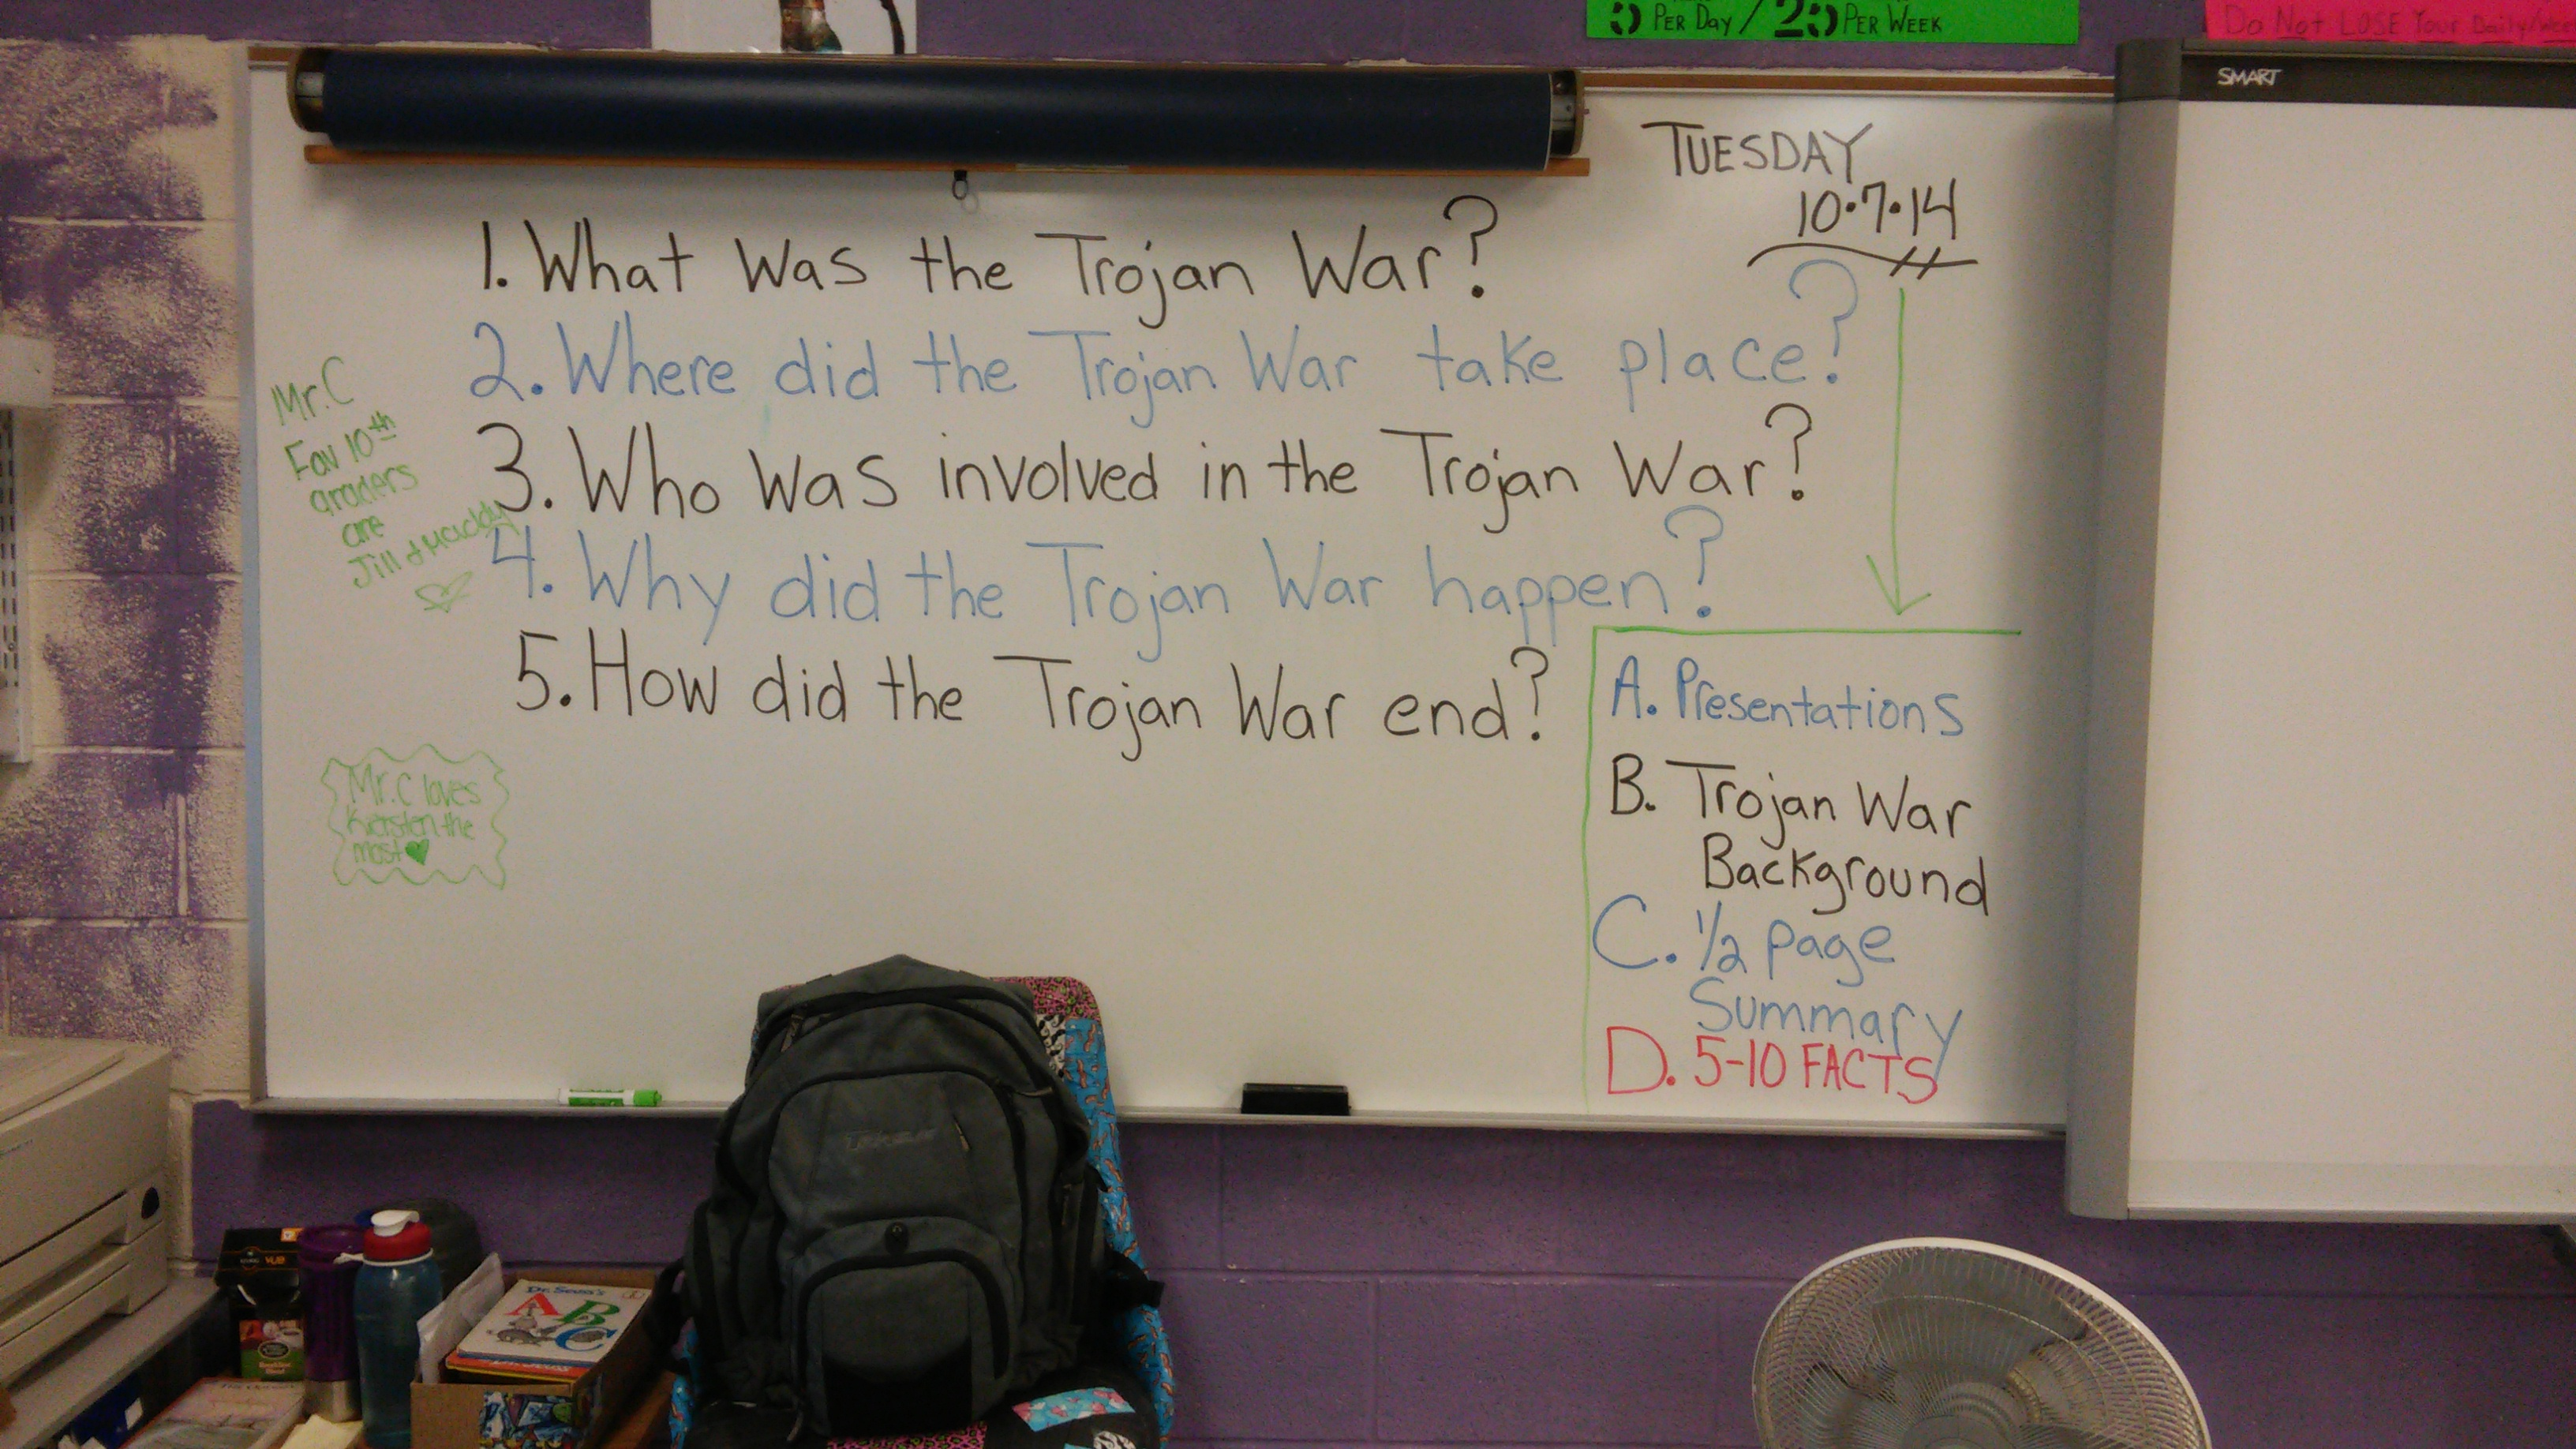 a daily agenda mr c s class learning is power write down 5 10 facts about the trojan war while viewing the presentation 4 create a 1 2 page summary about the trojan war based on